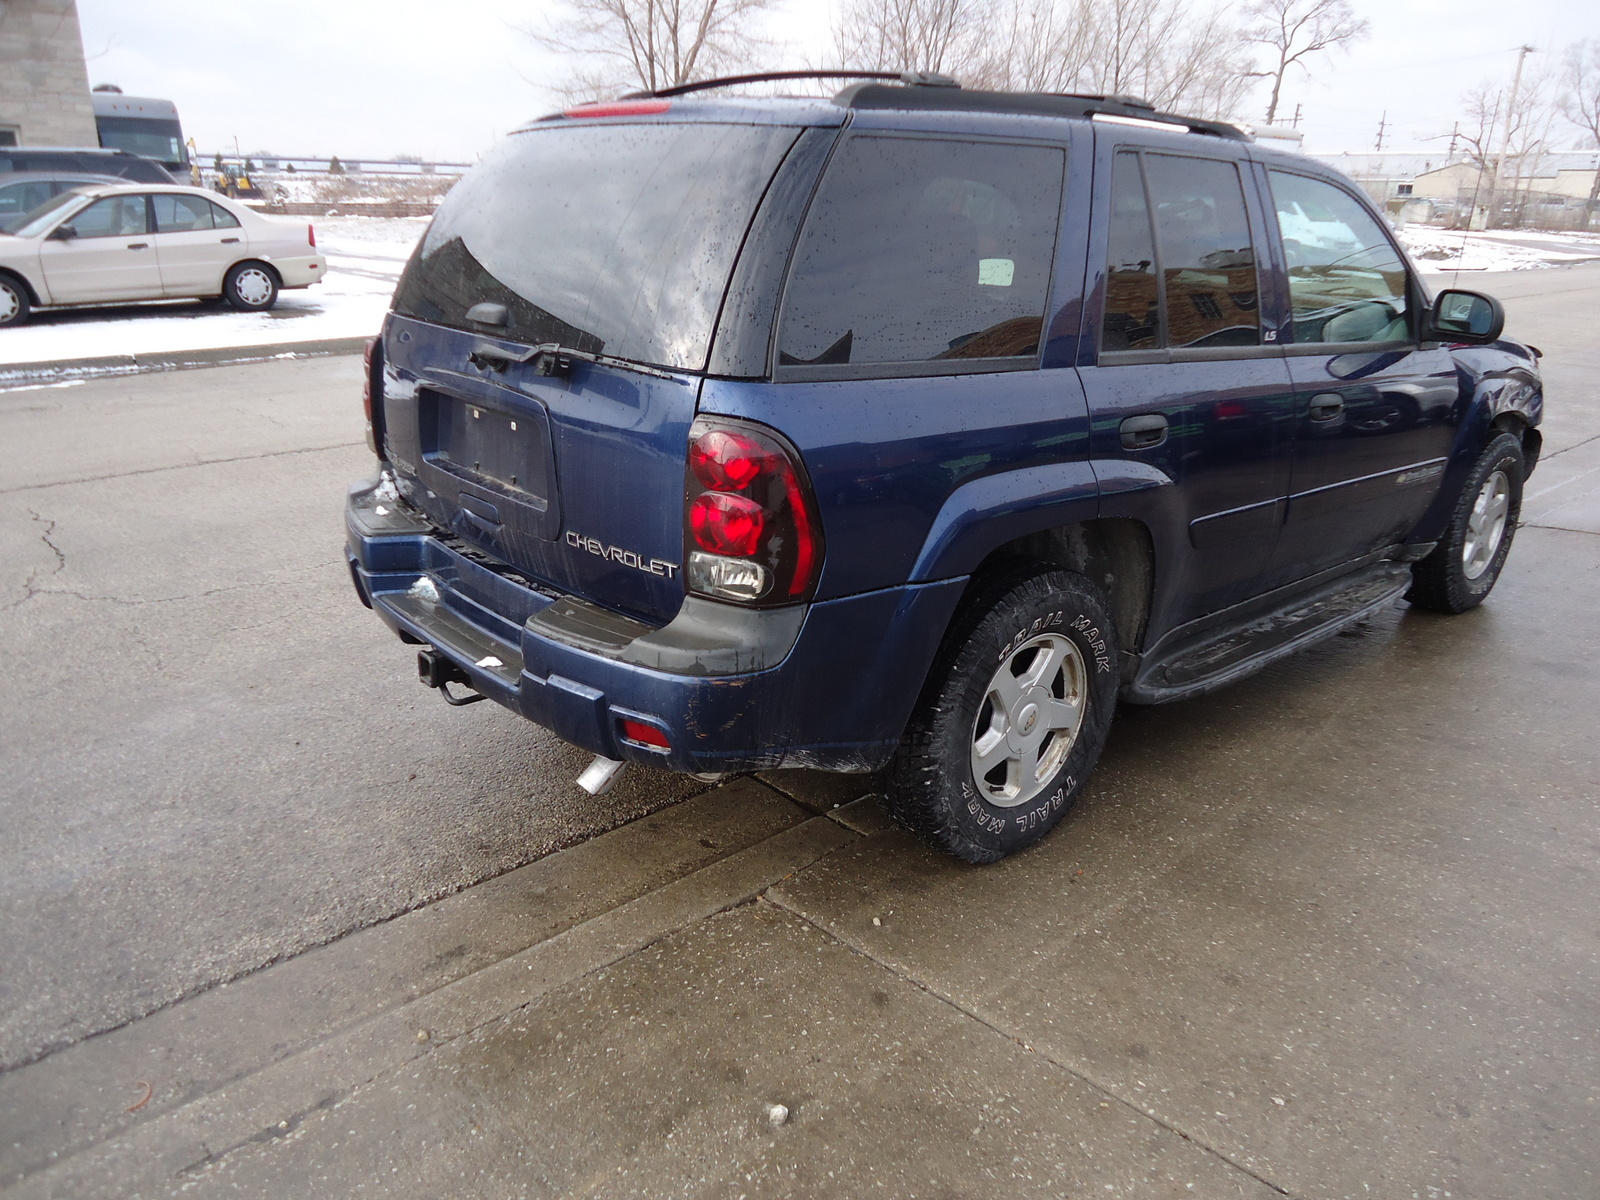 2002 chevrolet trailblazer lt 4wd picture exterior. Cars Review. Best American Auto & Cars Review